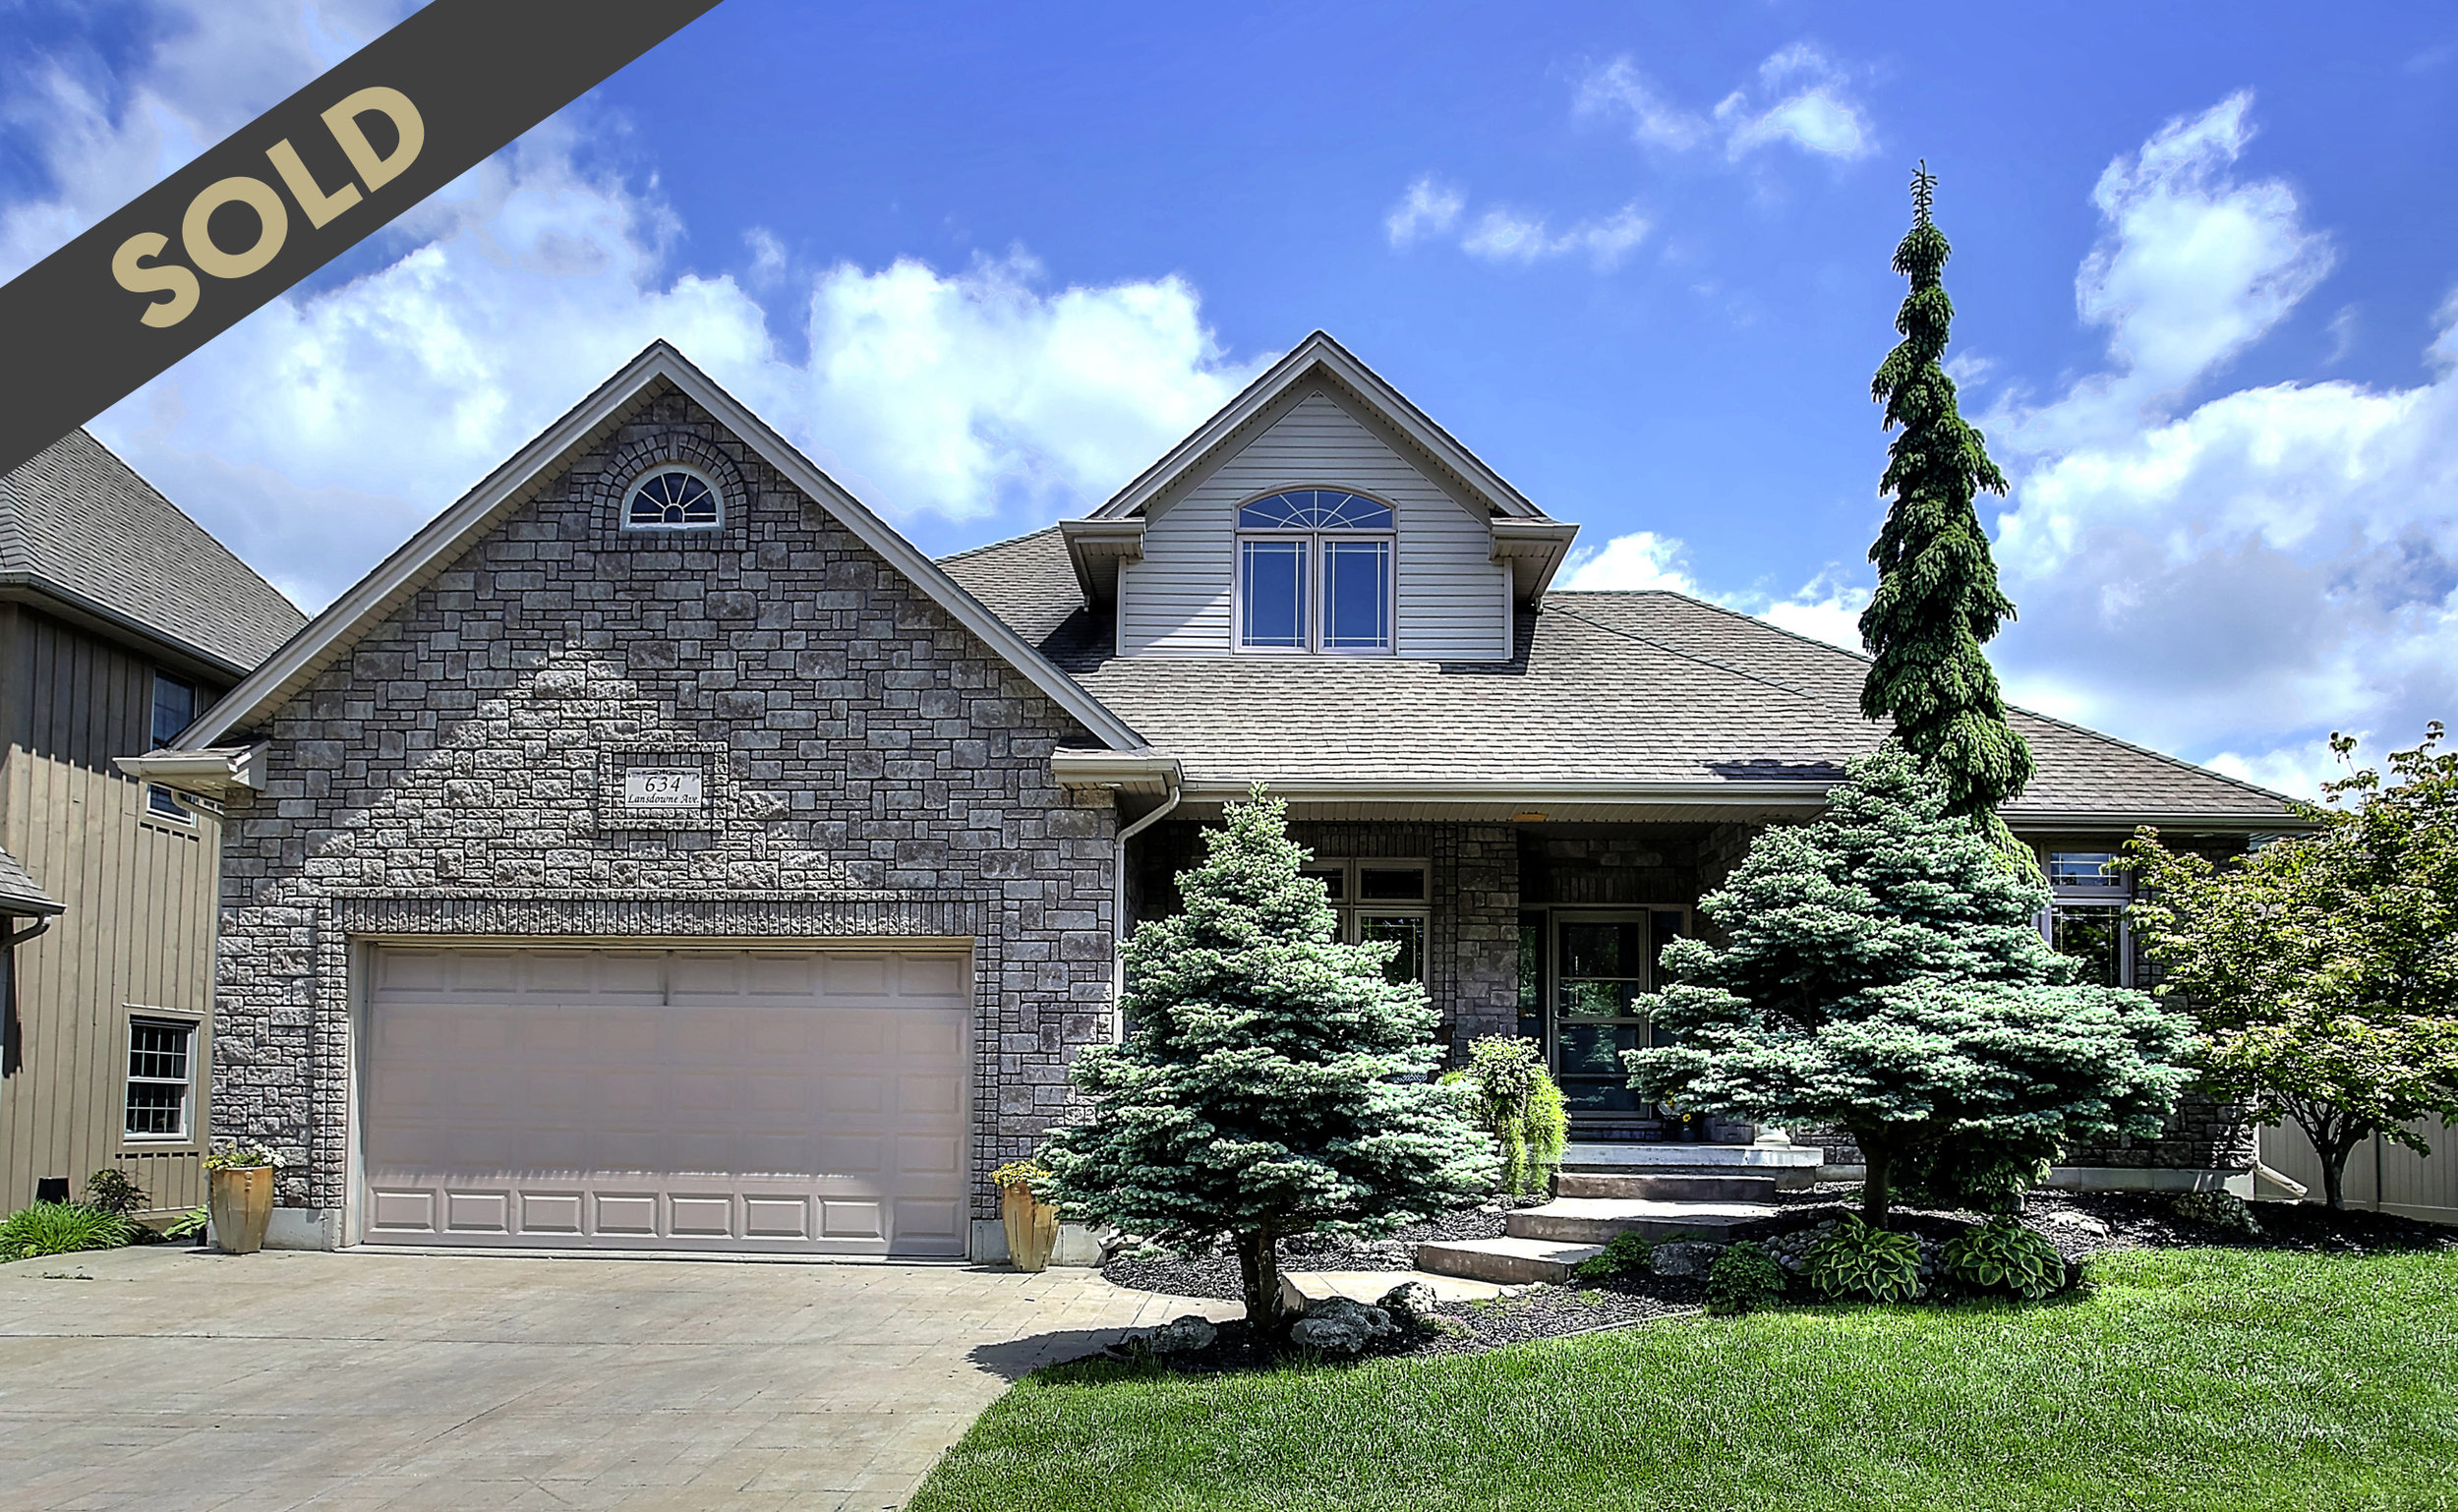 - 634 Lansdowne Avenue, WoodstockSold Asking $699,9005 beds/4 bath